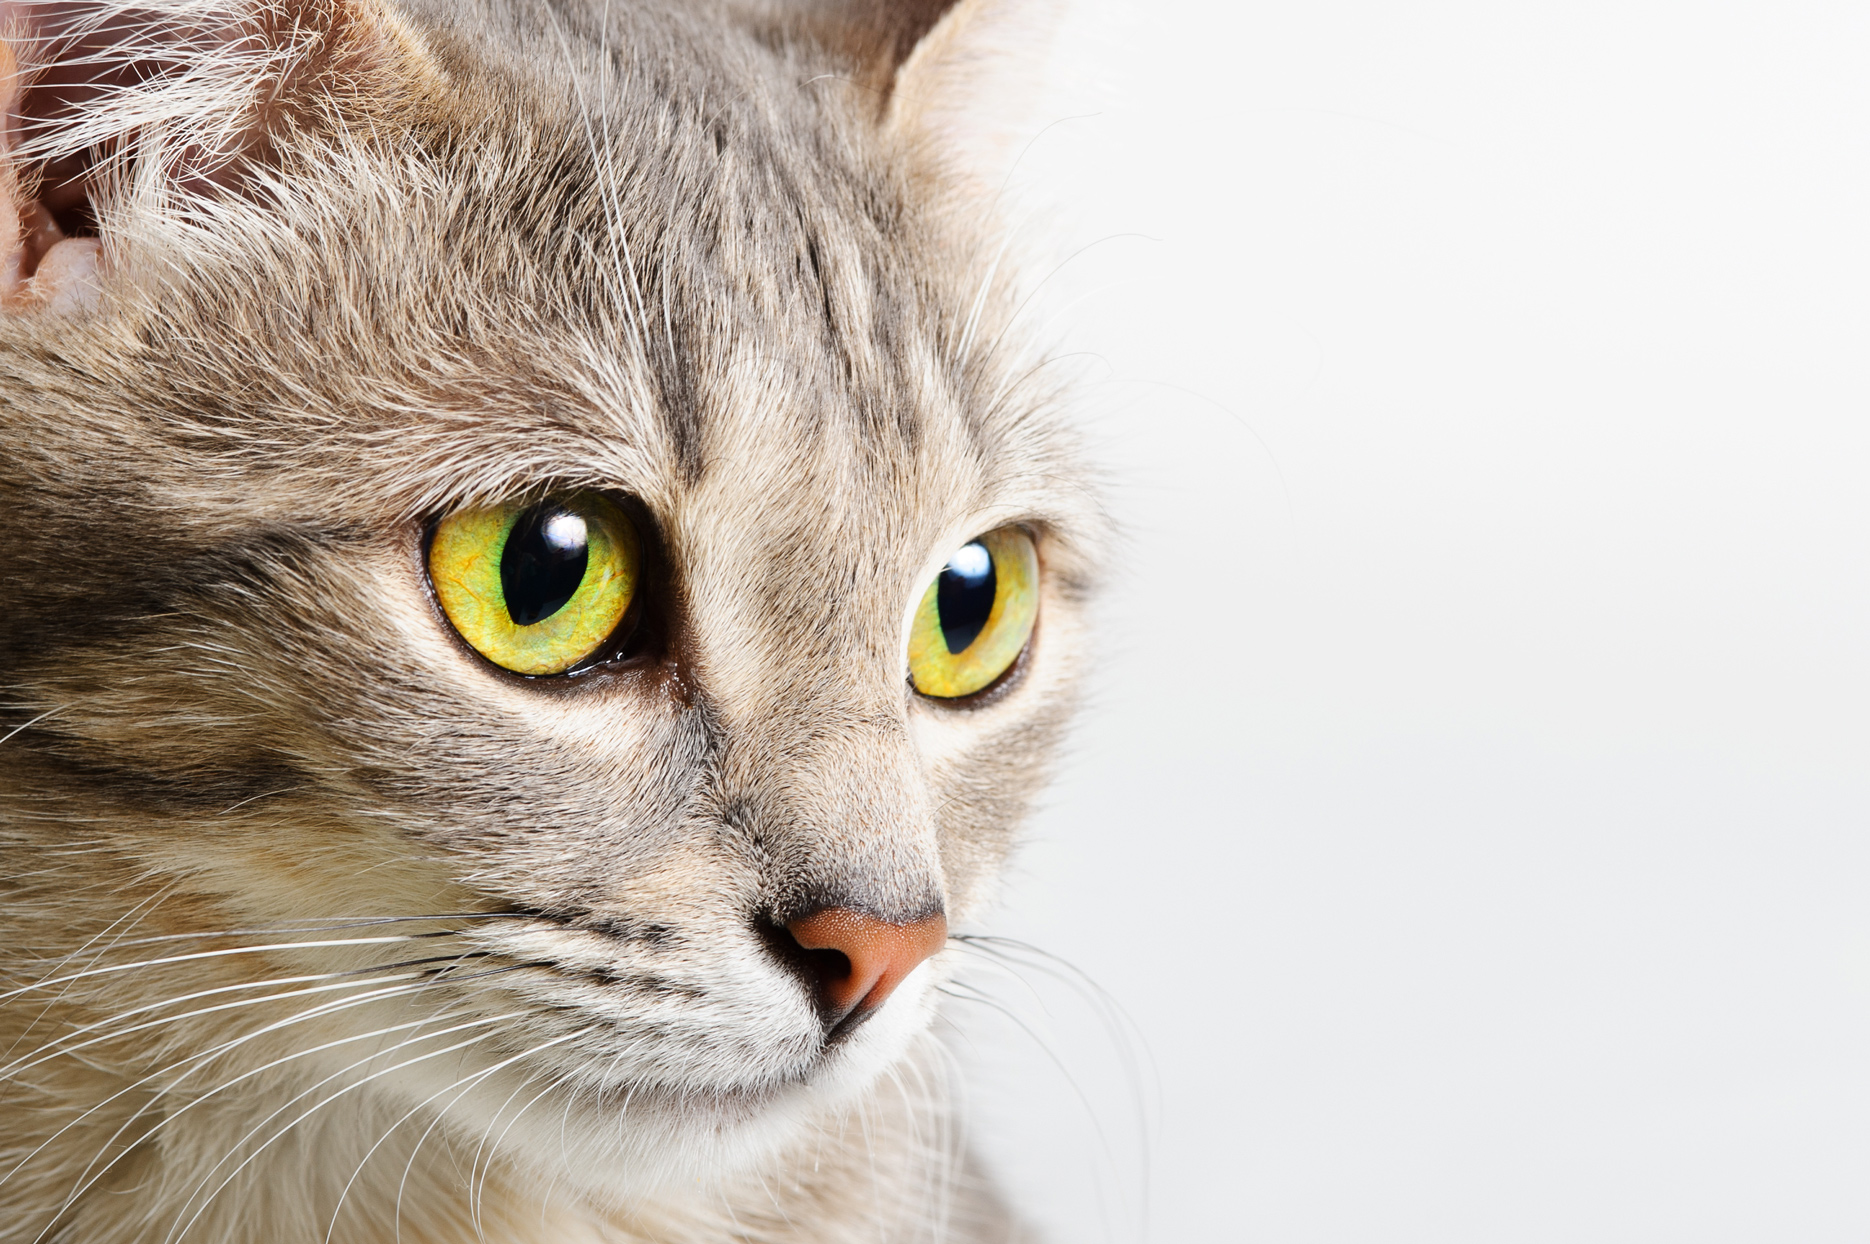 close up of cats face with yellow-green eyes